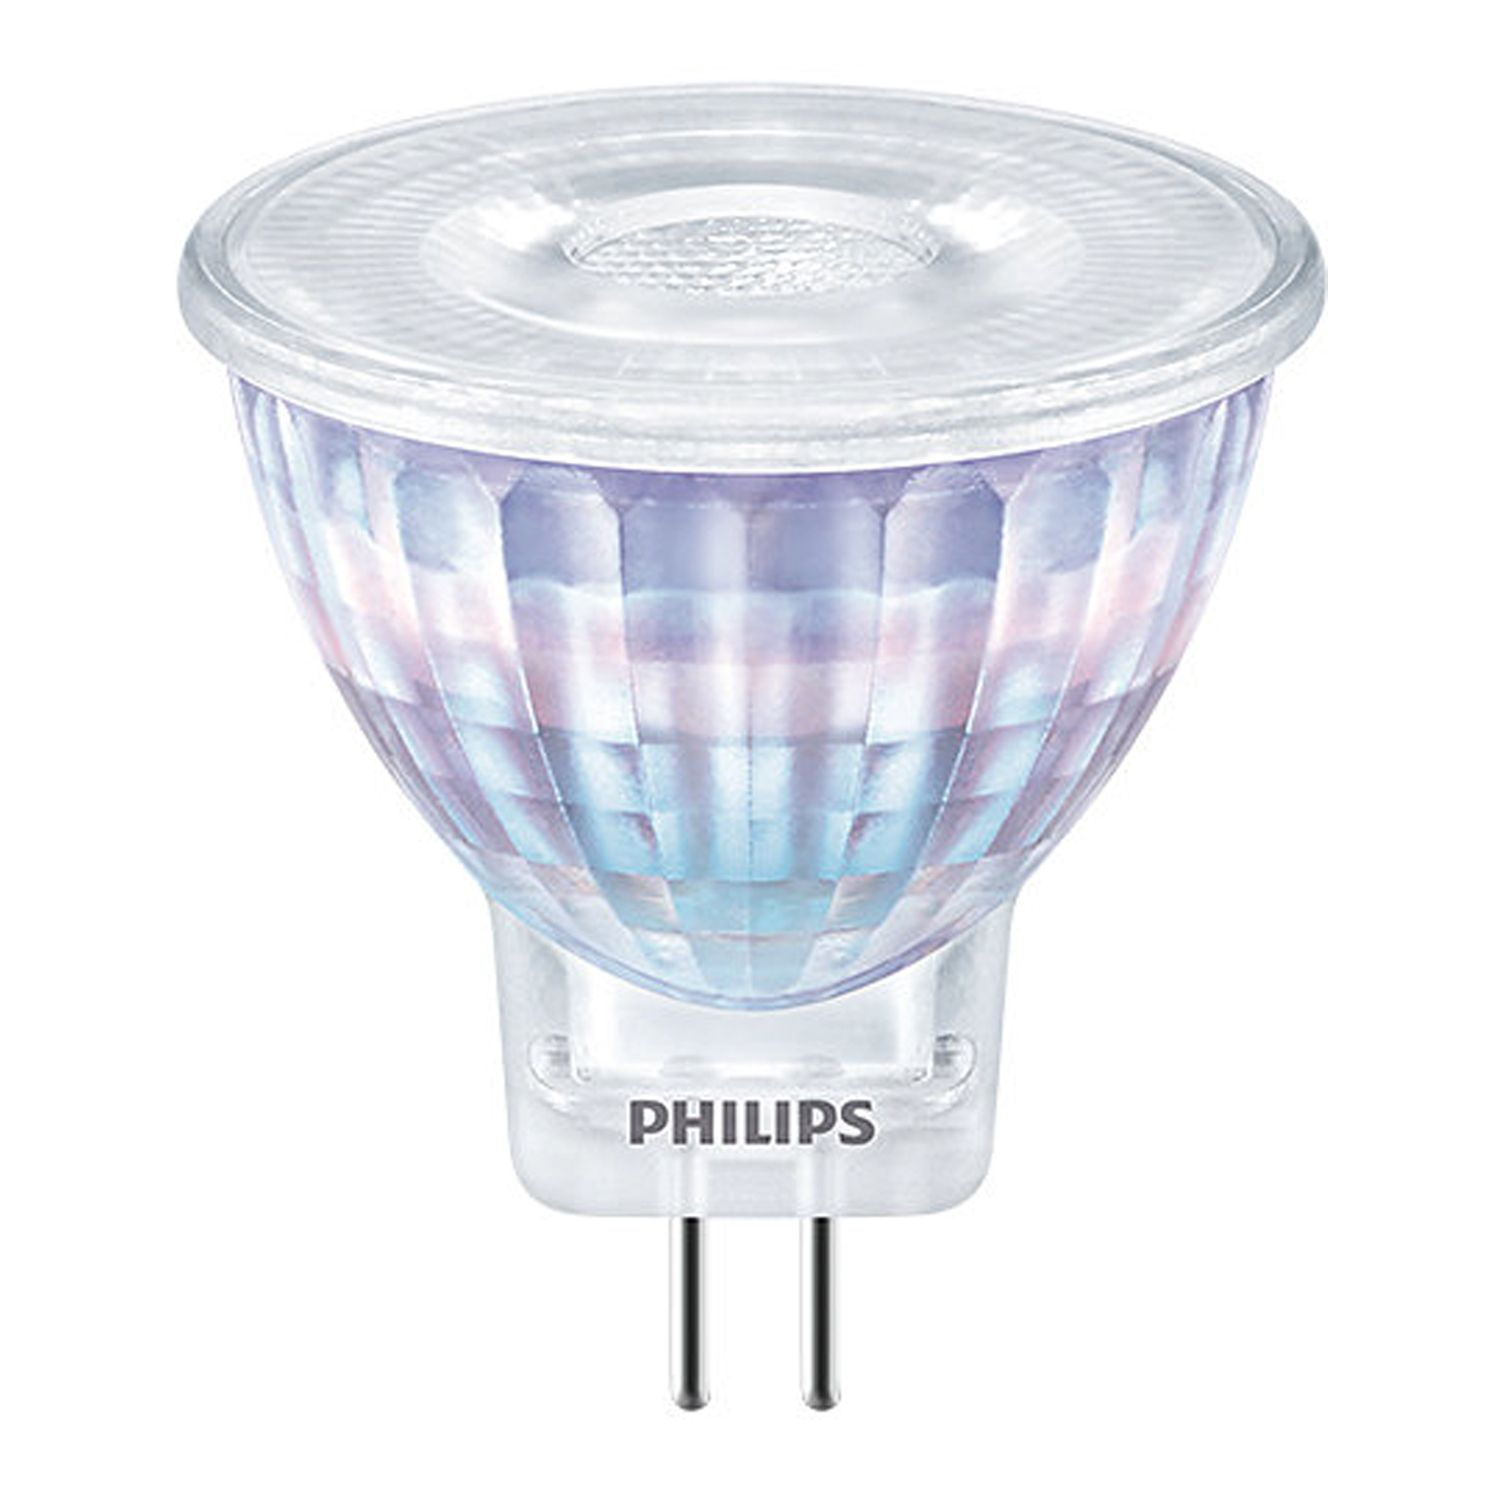 Philips CorePro LEDspot GU4 2.3W 827 36D | Replacer for 20W